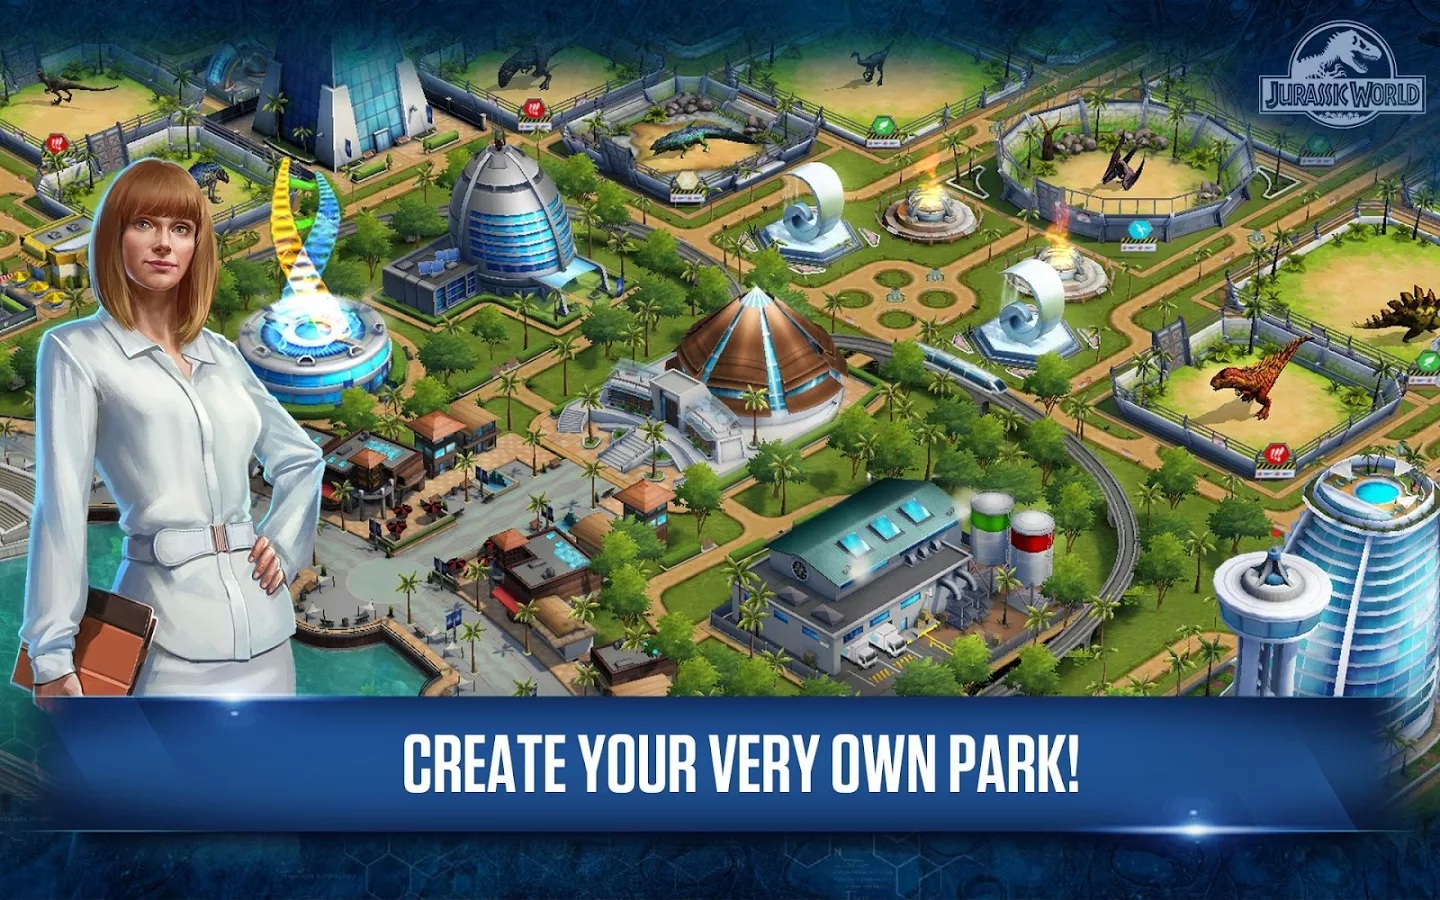 jwgame02 Jurassic World: The Game Available on IOS/Android